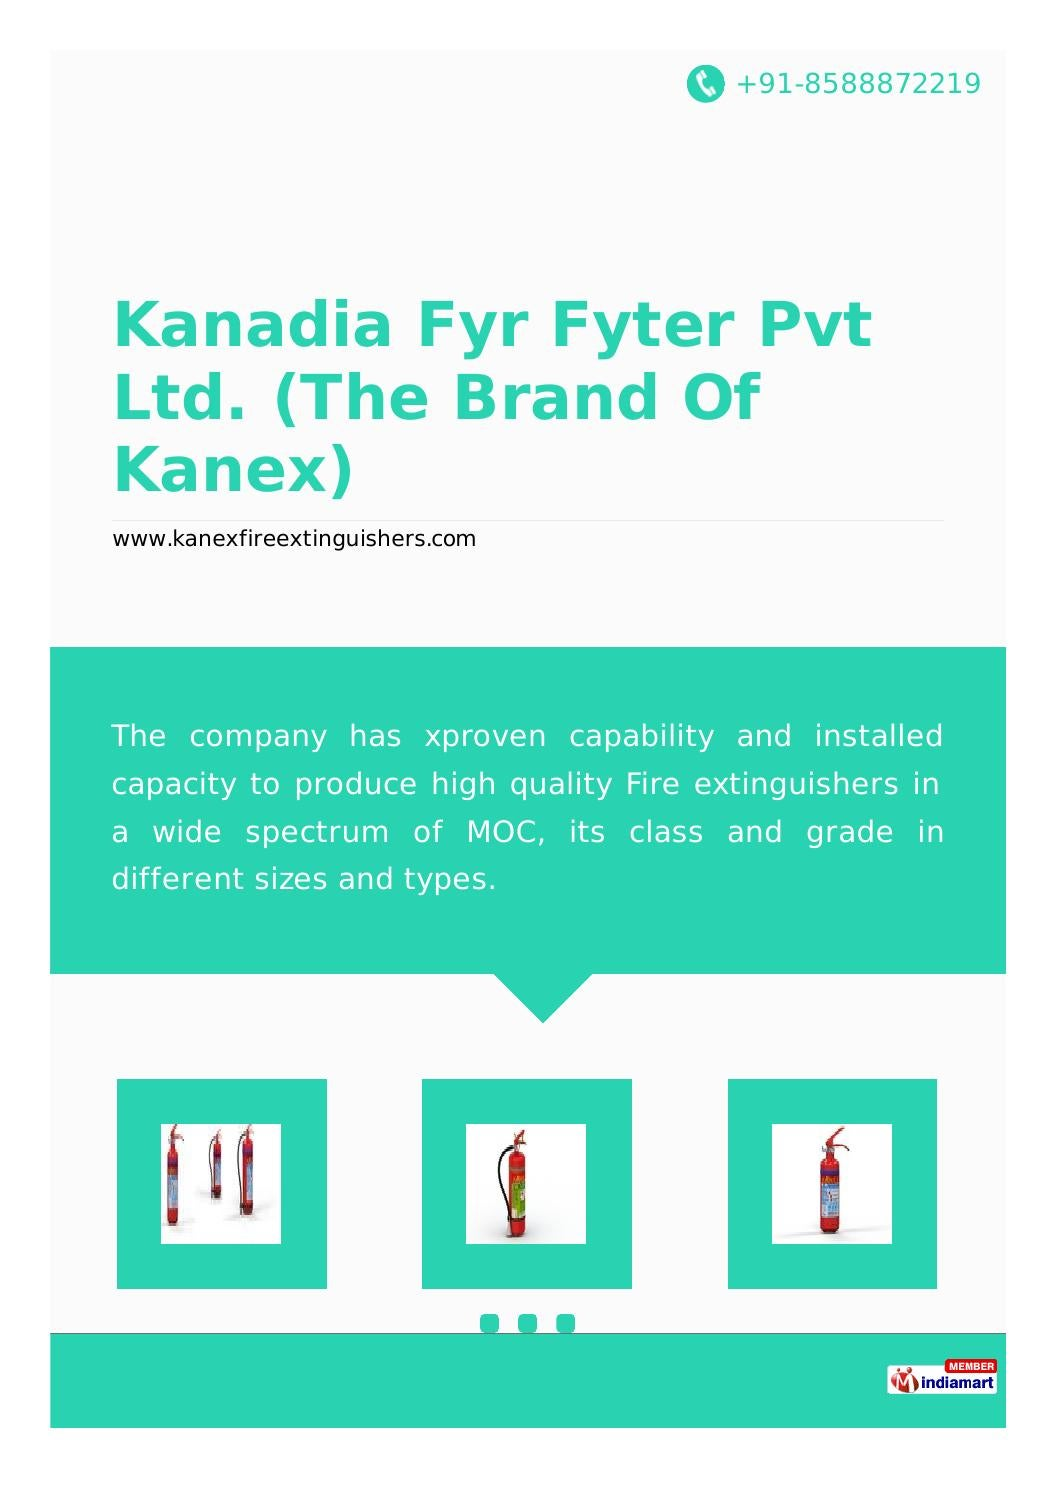 Kanadia fyr fyter pvt ltd the brand of kanex by kanexfire - issuu